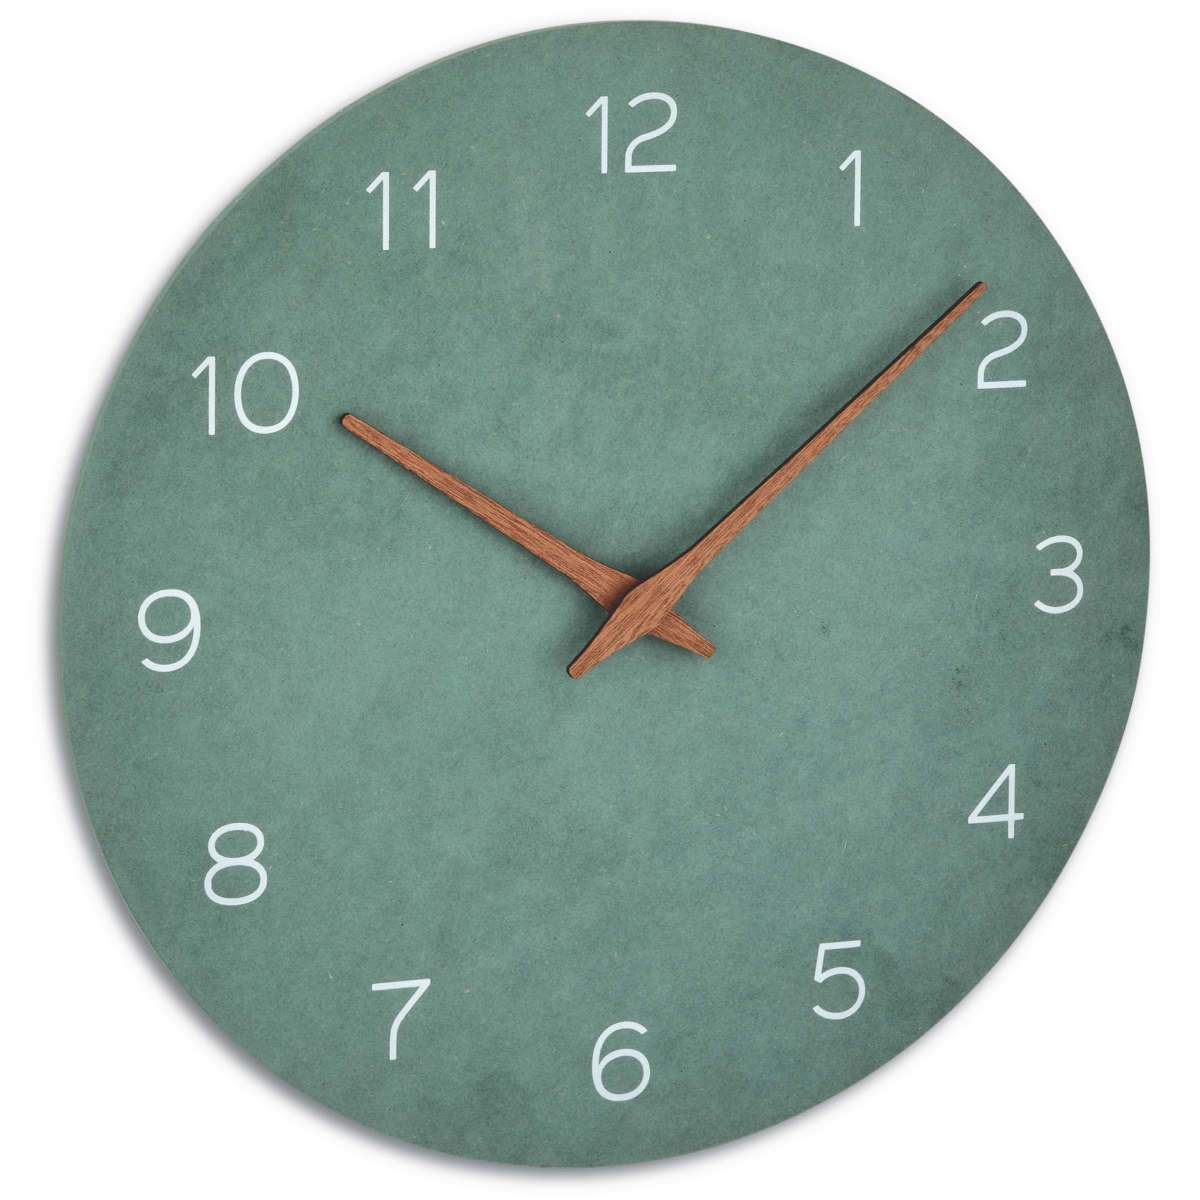 TFA Germany Melany Minimalist Wooden Hands Wall Clock Jade Green 30cm 60.3054.04 1